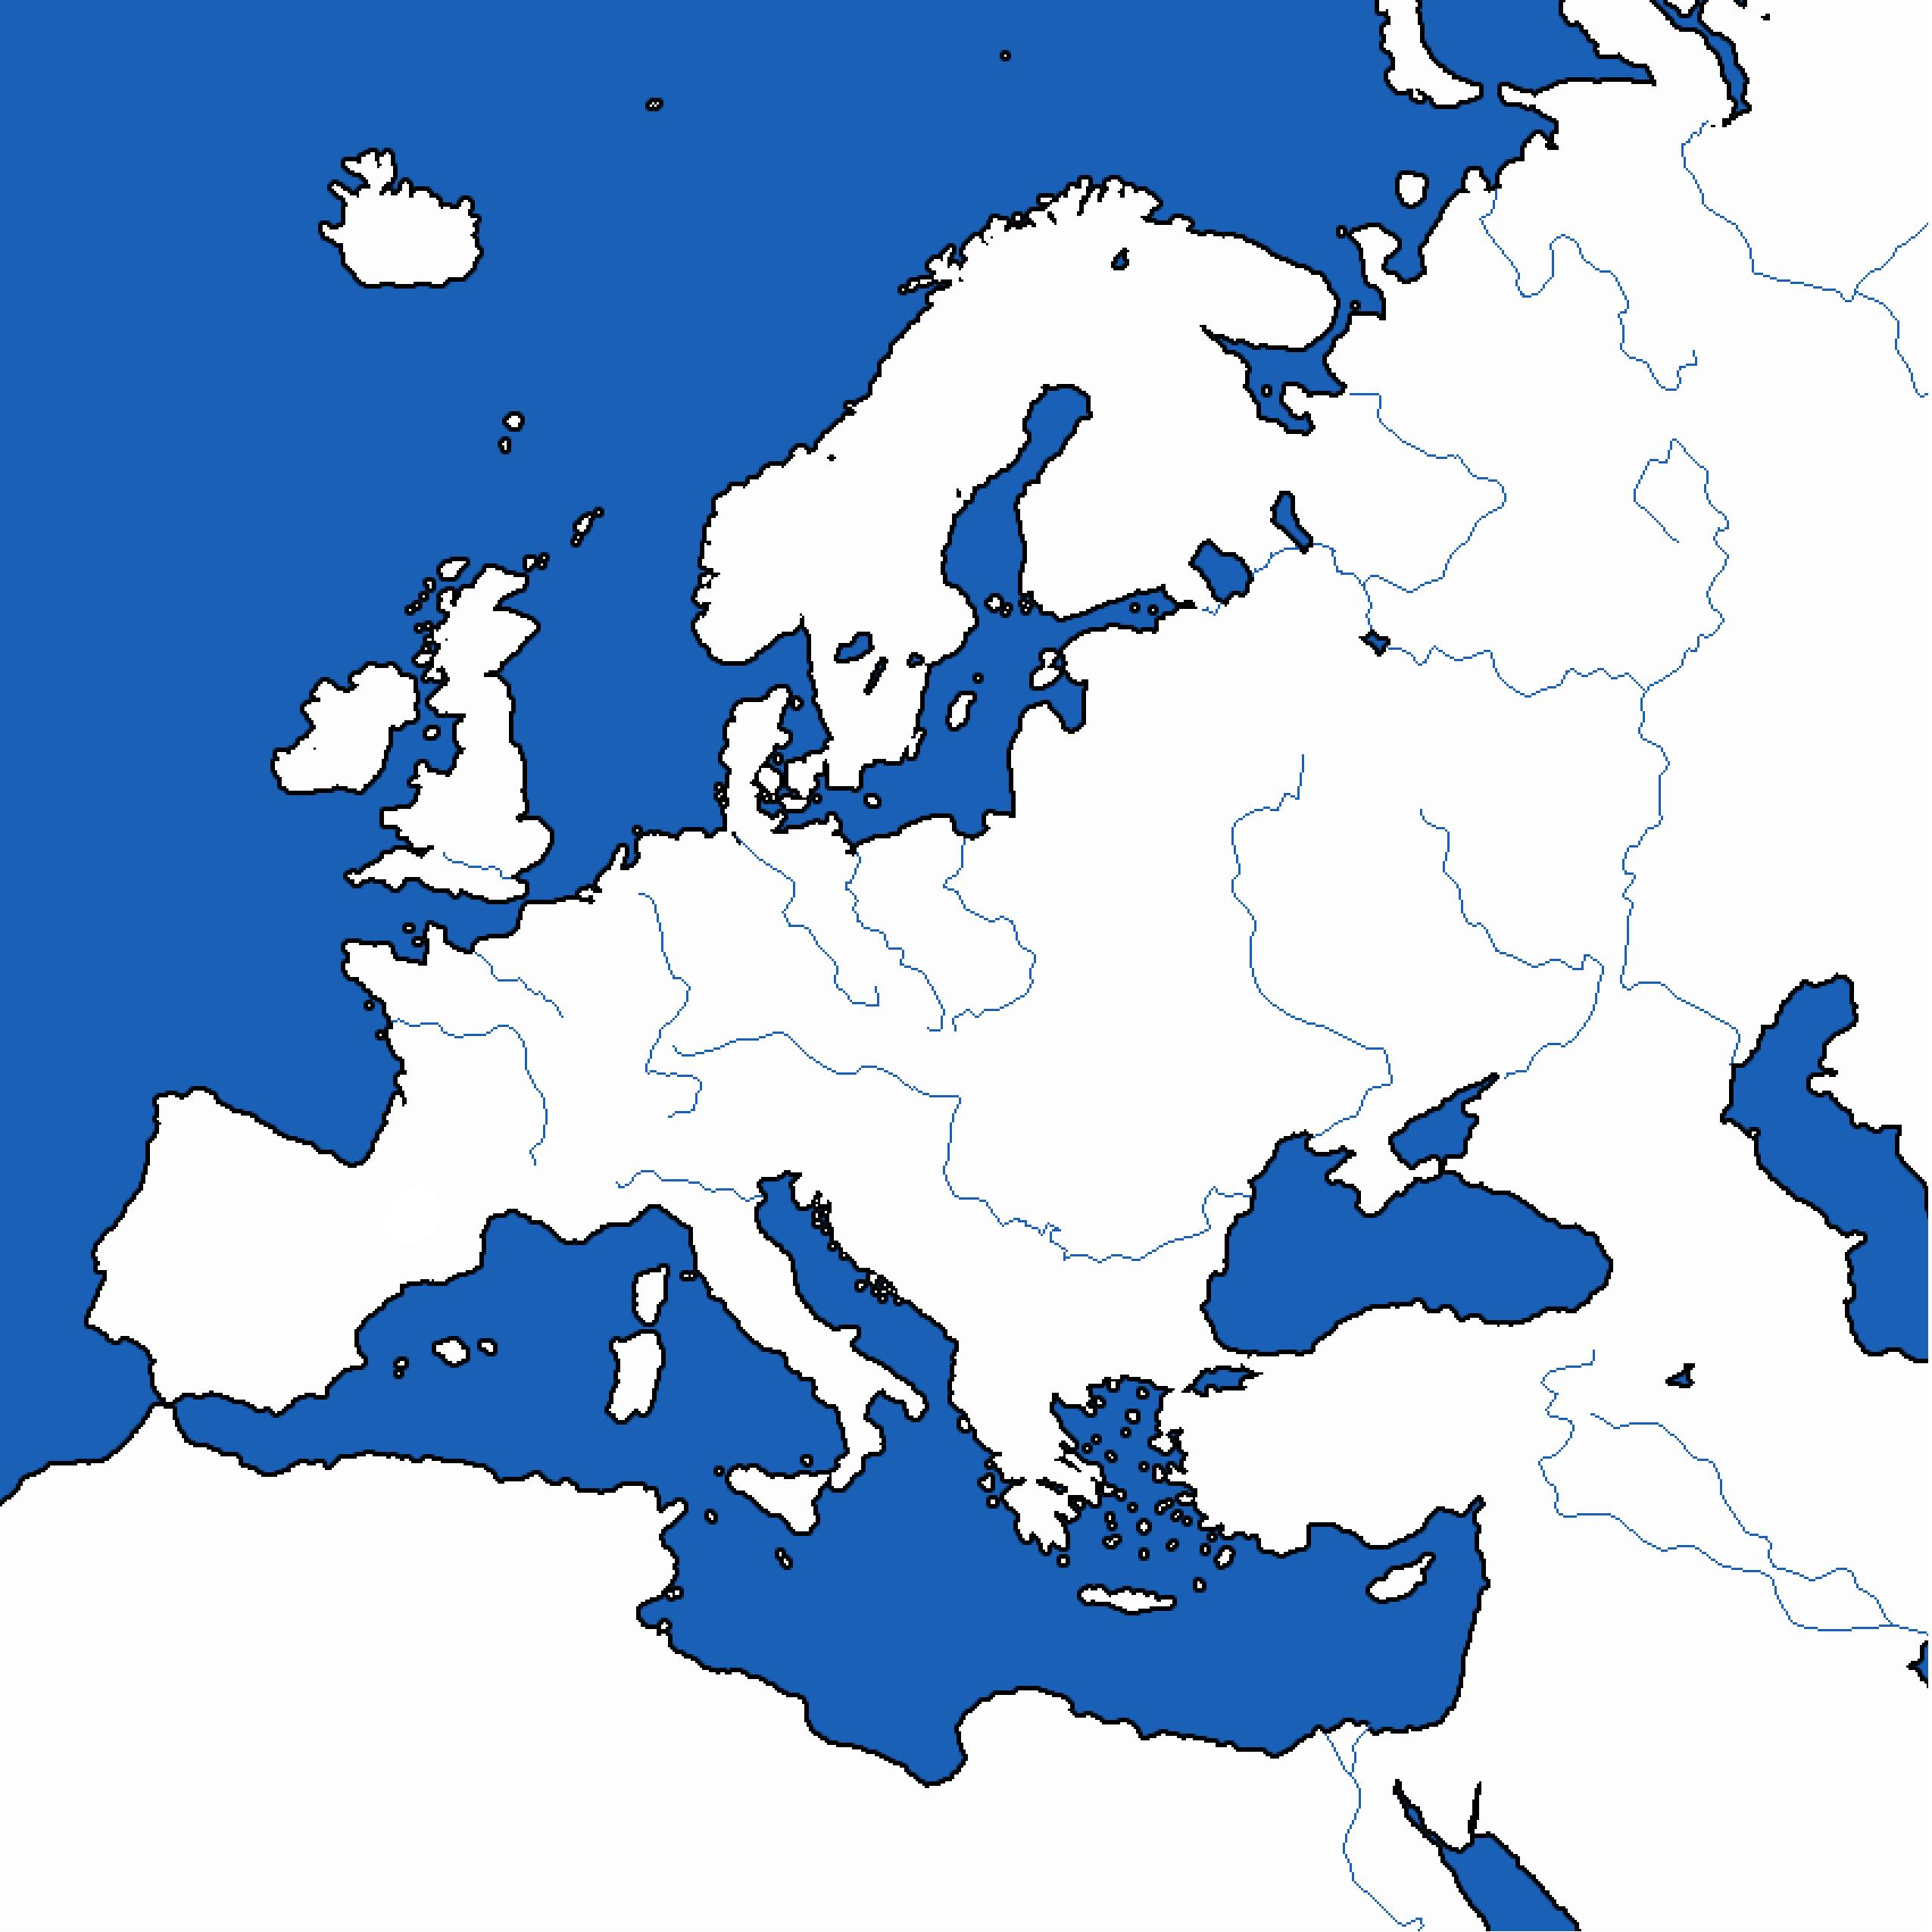 Printable clipart map svg royalty free Clipart map of europe - ClipartFest svg royalty free